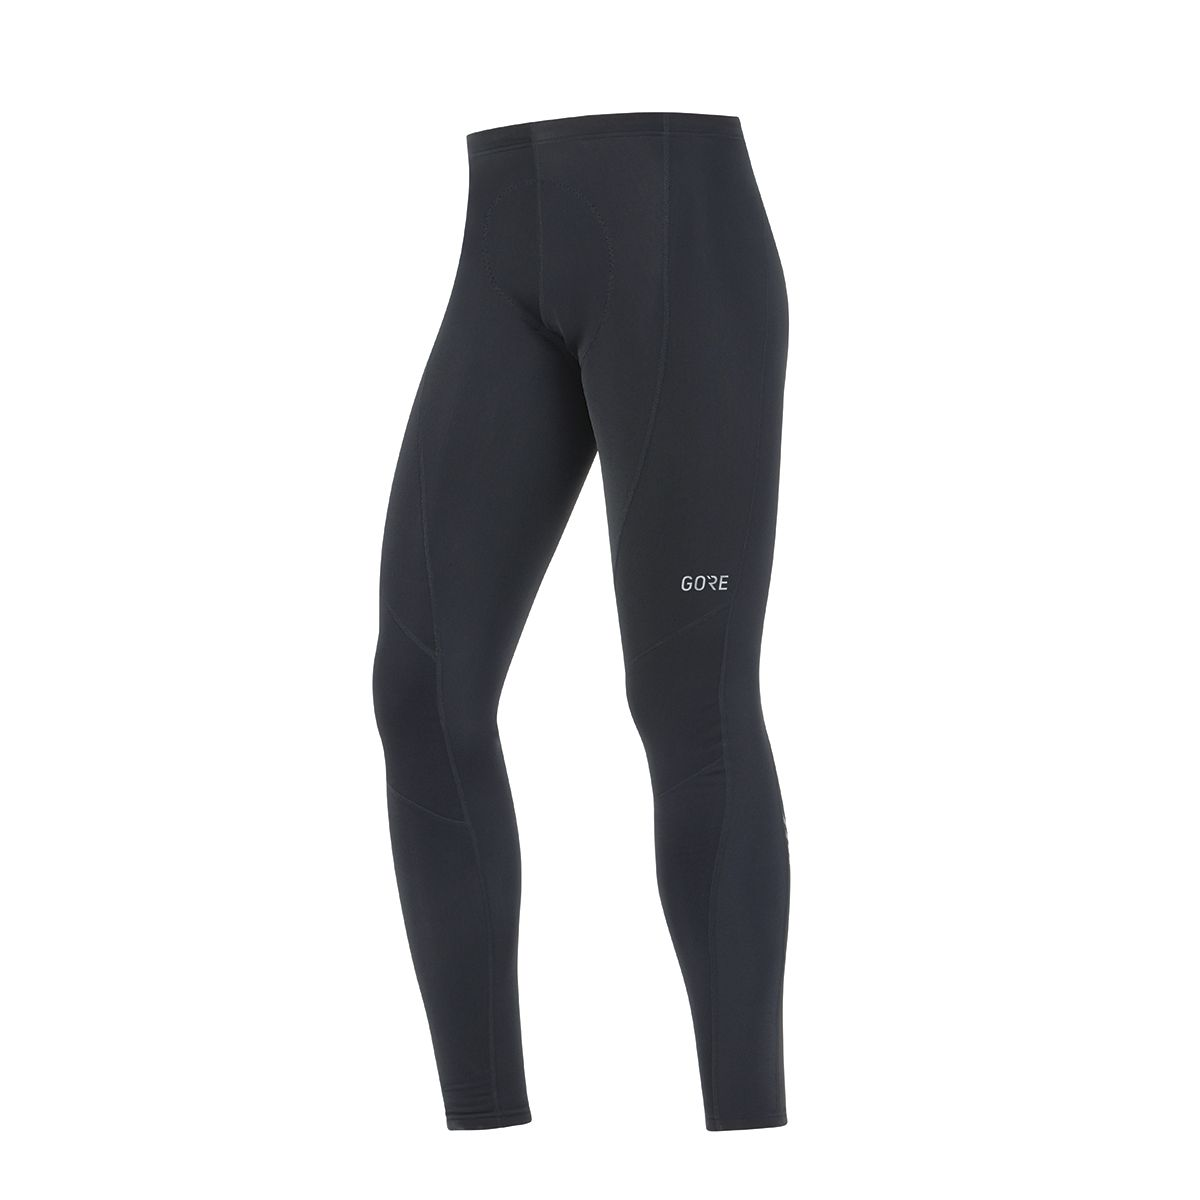 GORE WEAR C3 THERMO TIGHTS+ thermal cycling tights for men | Bukser